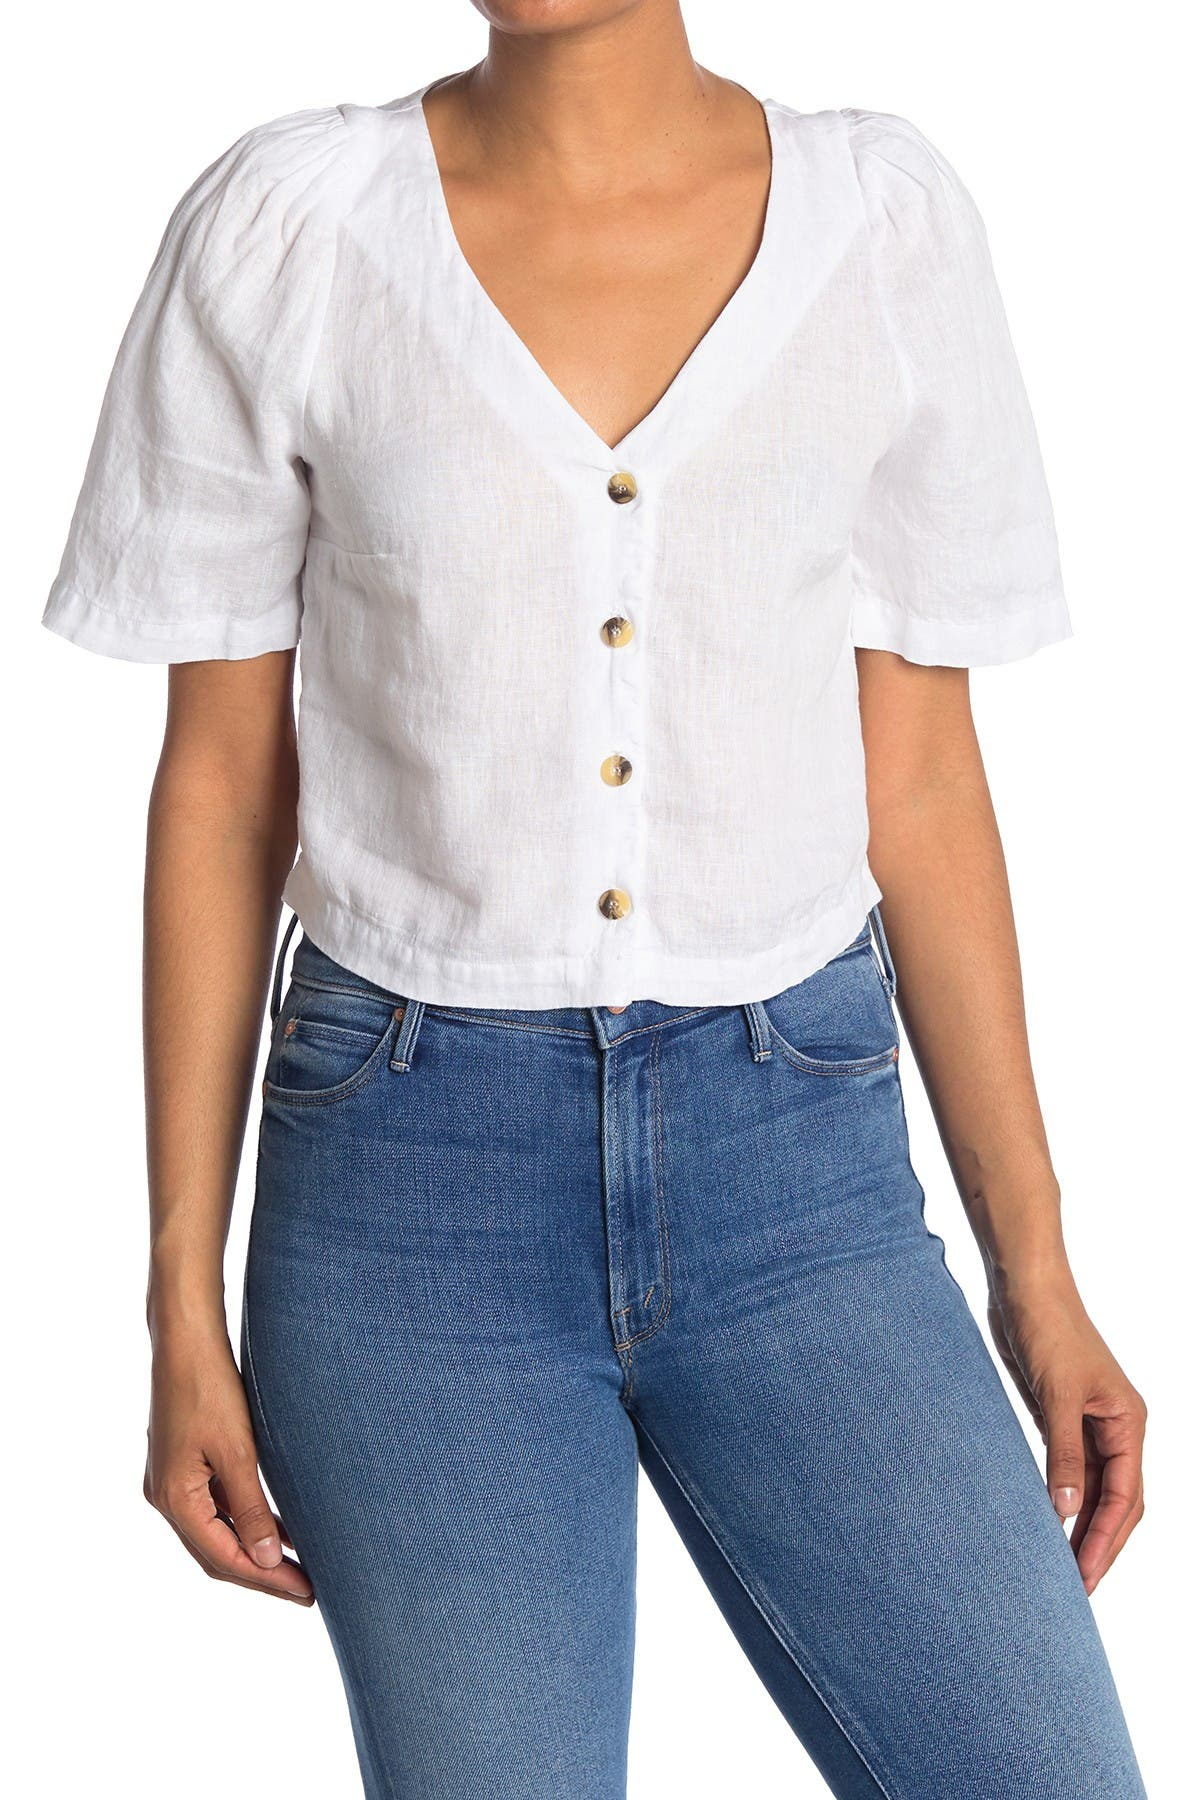 Image of Stateside Linen Puff Sleeve Button Up Top